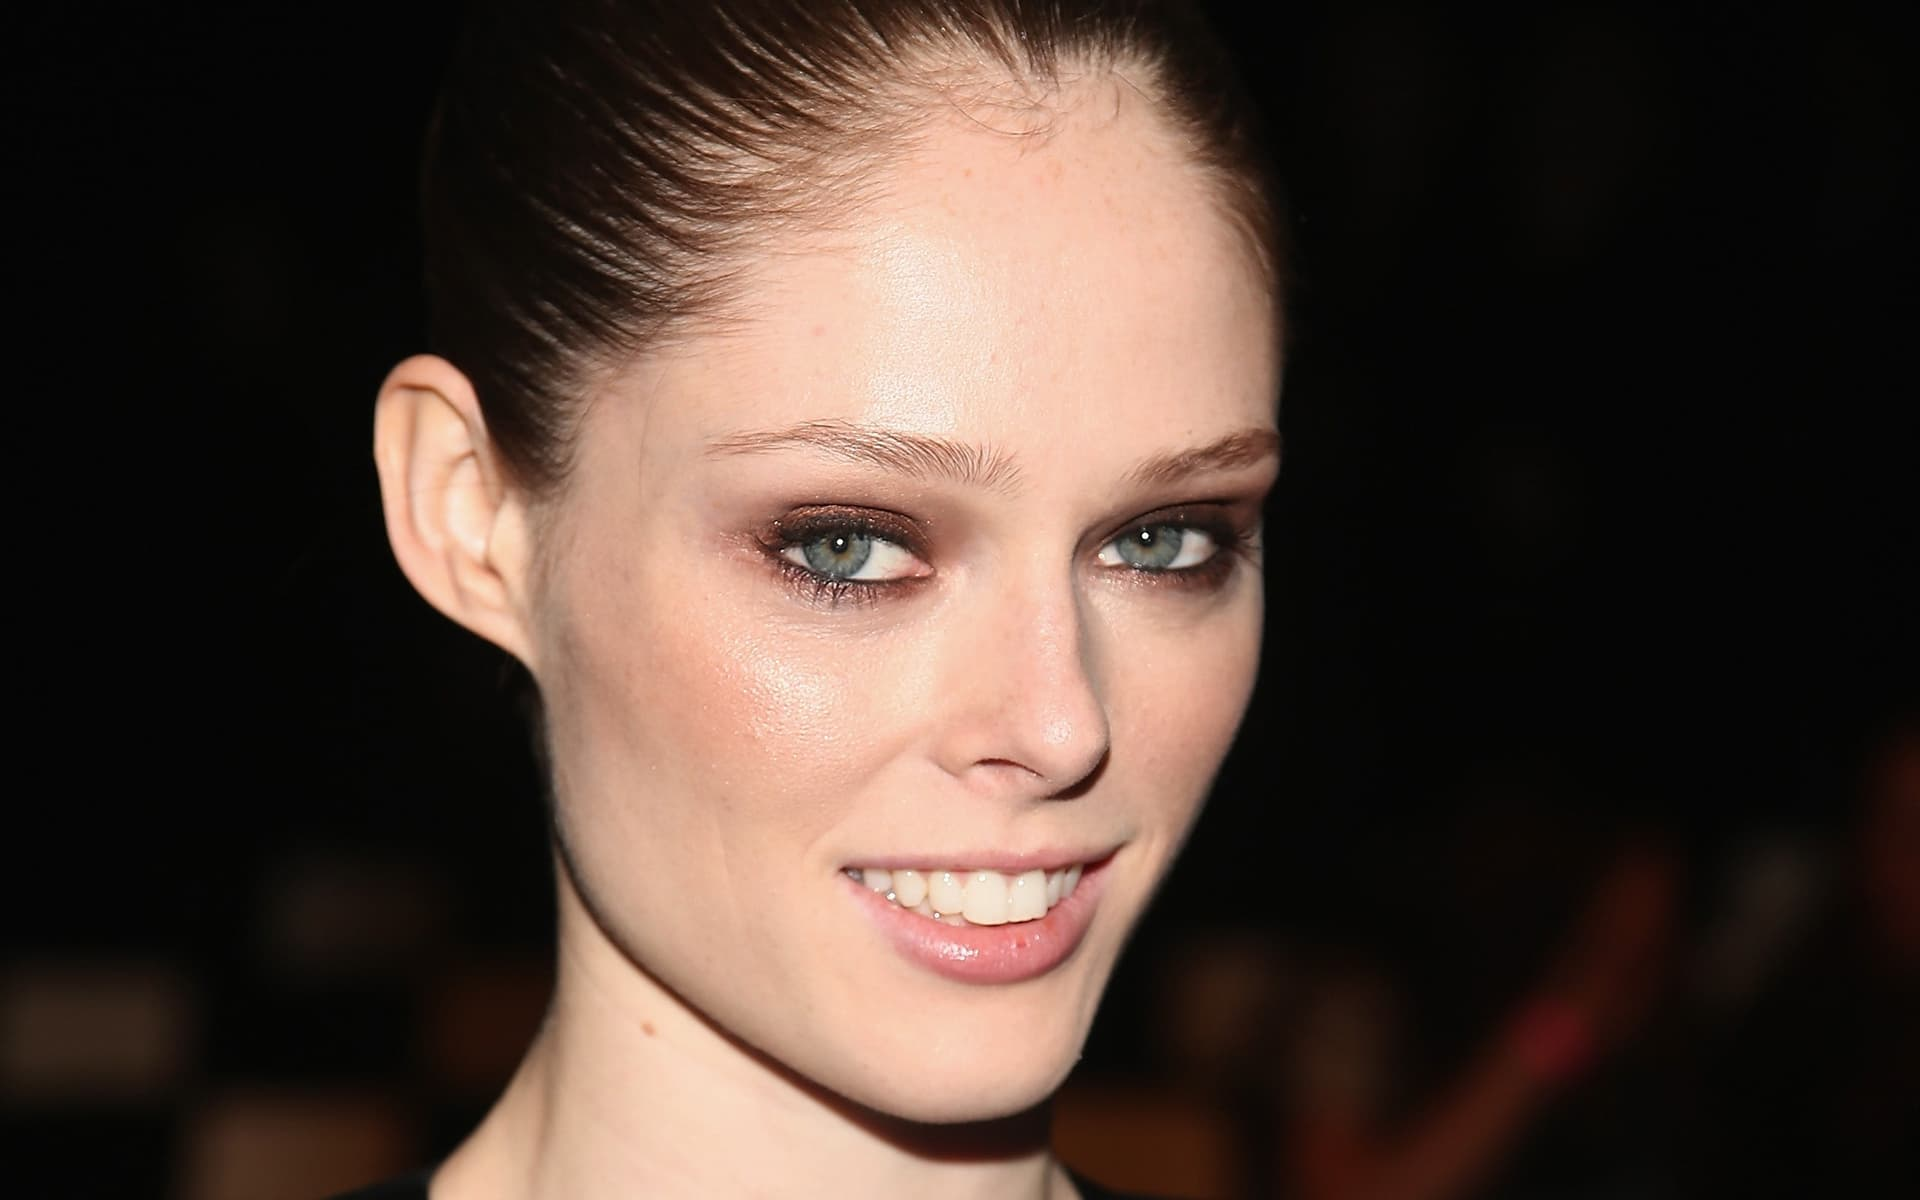 Coco Rocha smile wallpapers backgrounds